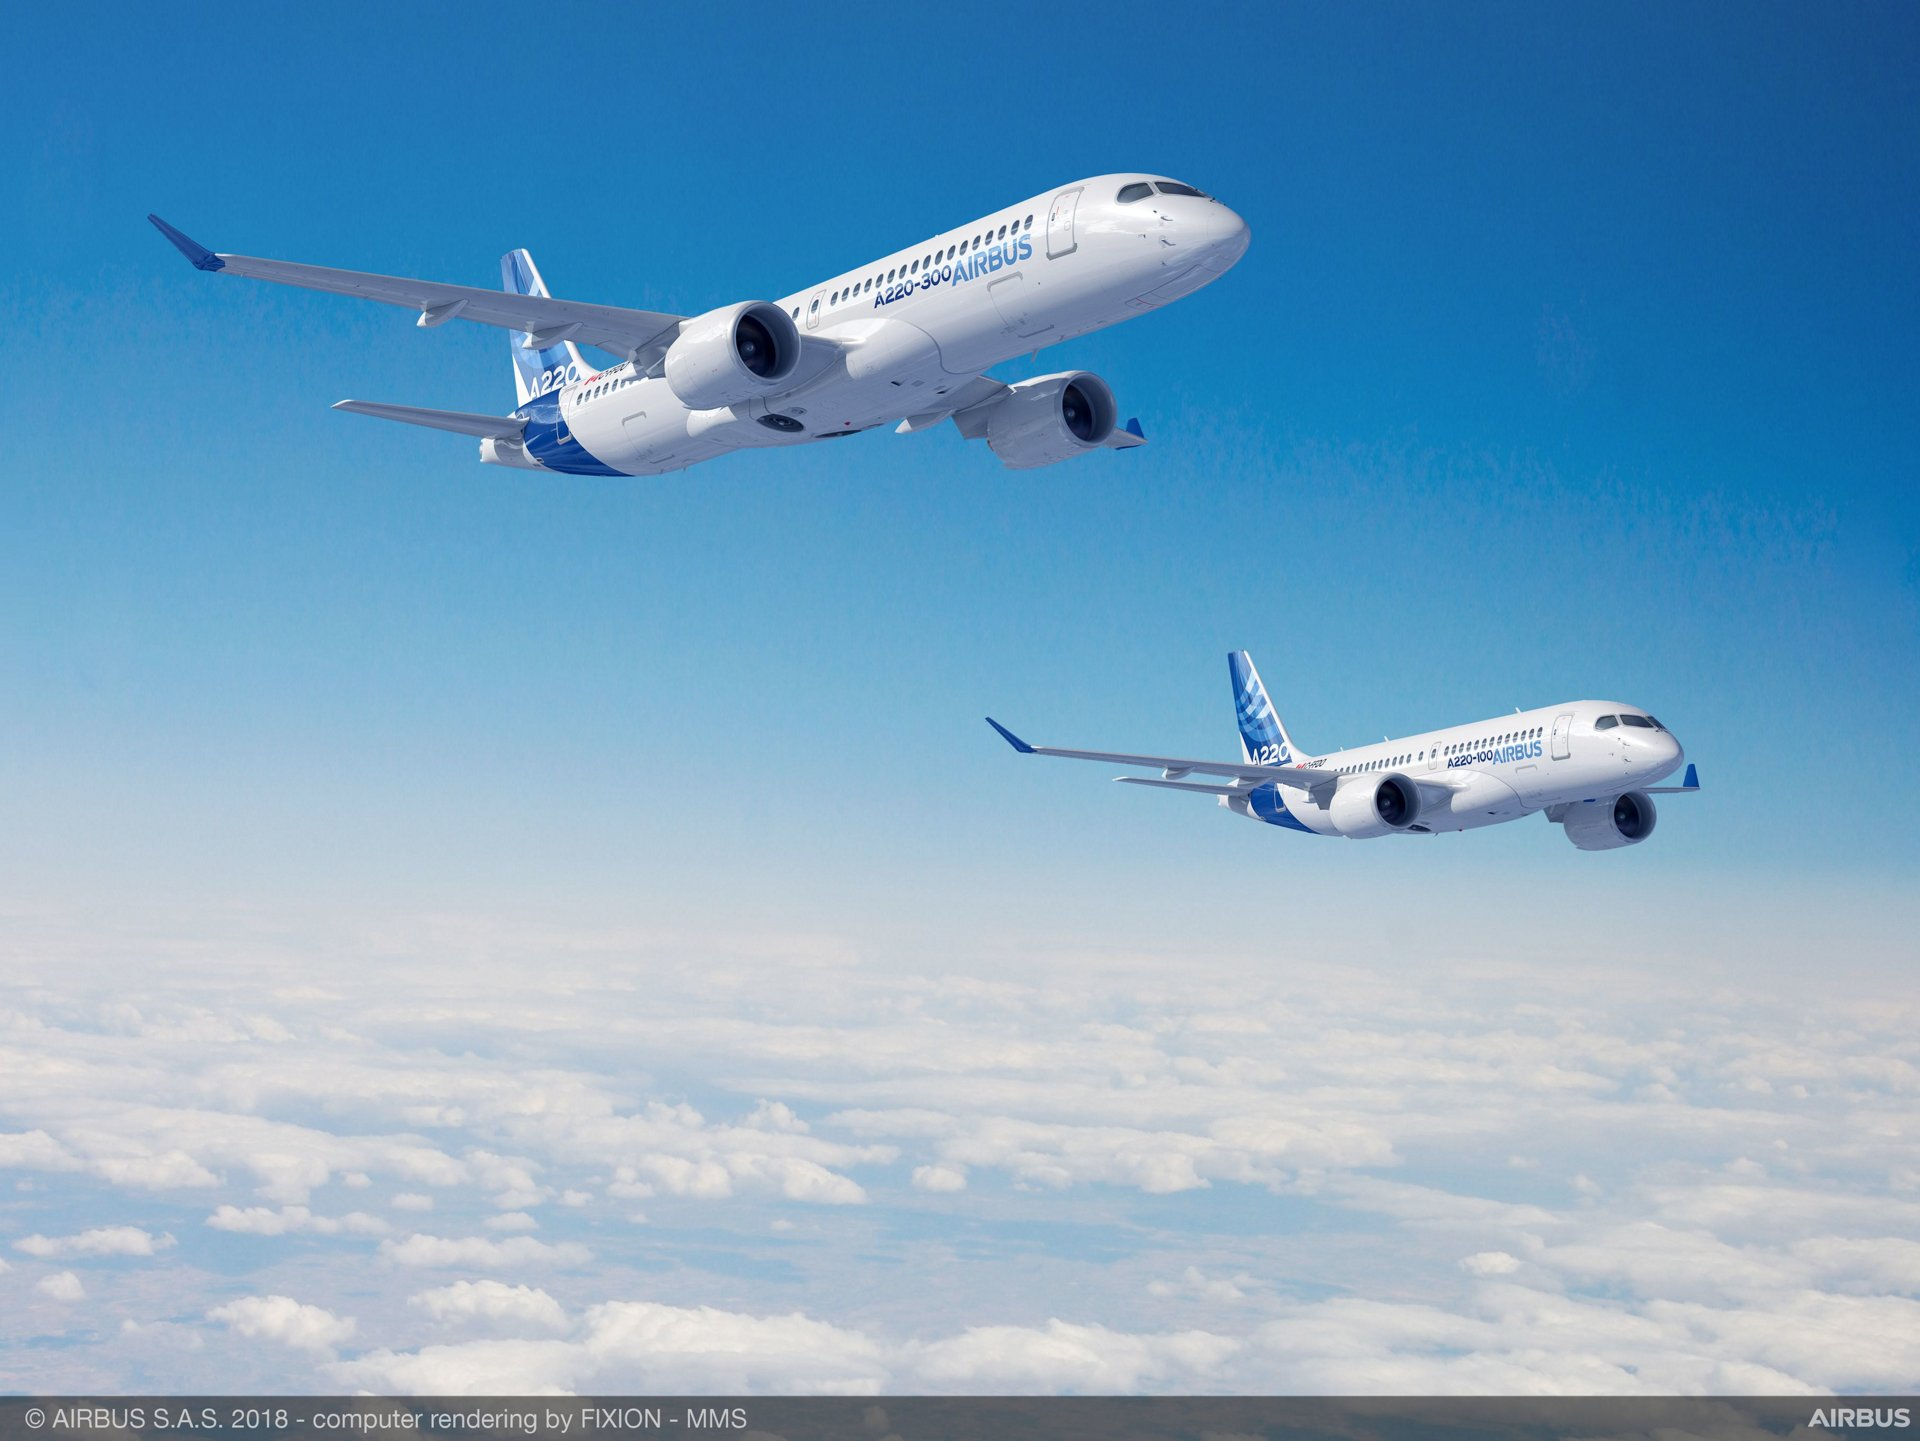 As the newest addition to Airbus' single-aisle product line, the A220 Family aircraft come in two versions: the A220-100 and the longer-fuselage A220-300